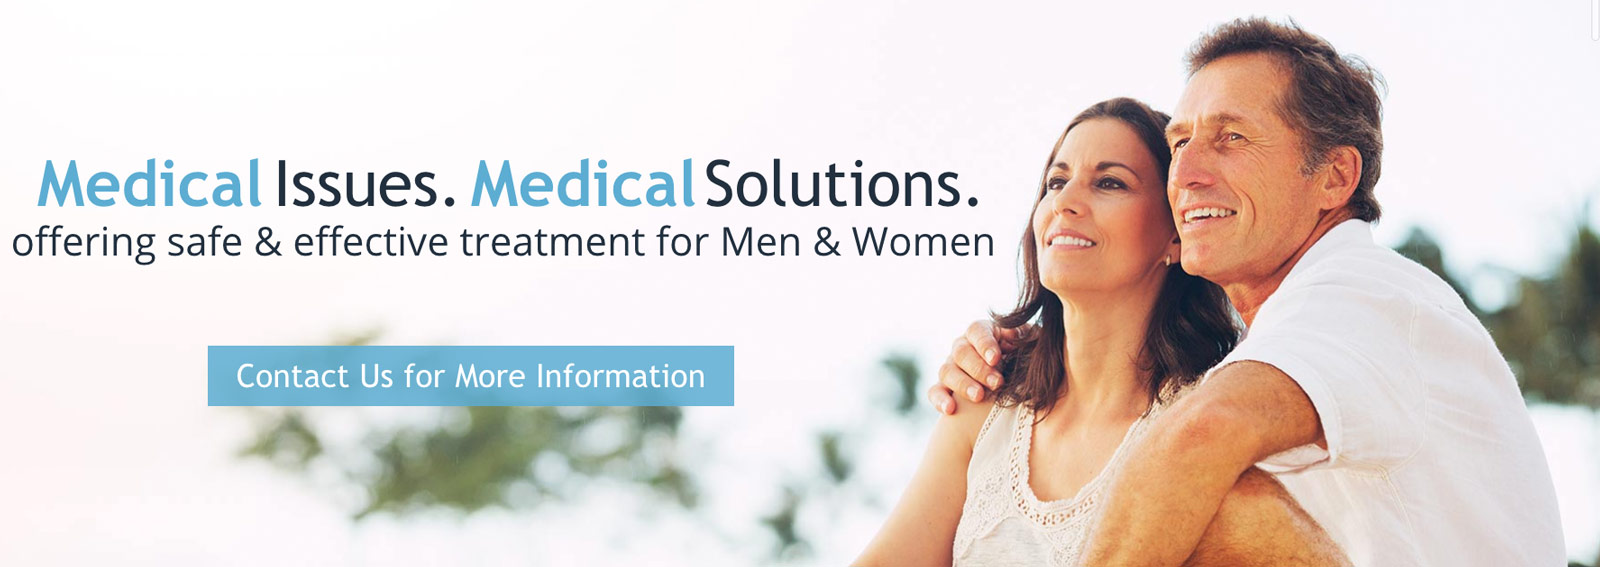 Medical Issues. Medical Sulutions. Contact us for more information